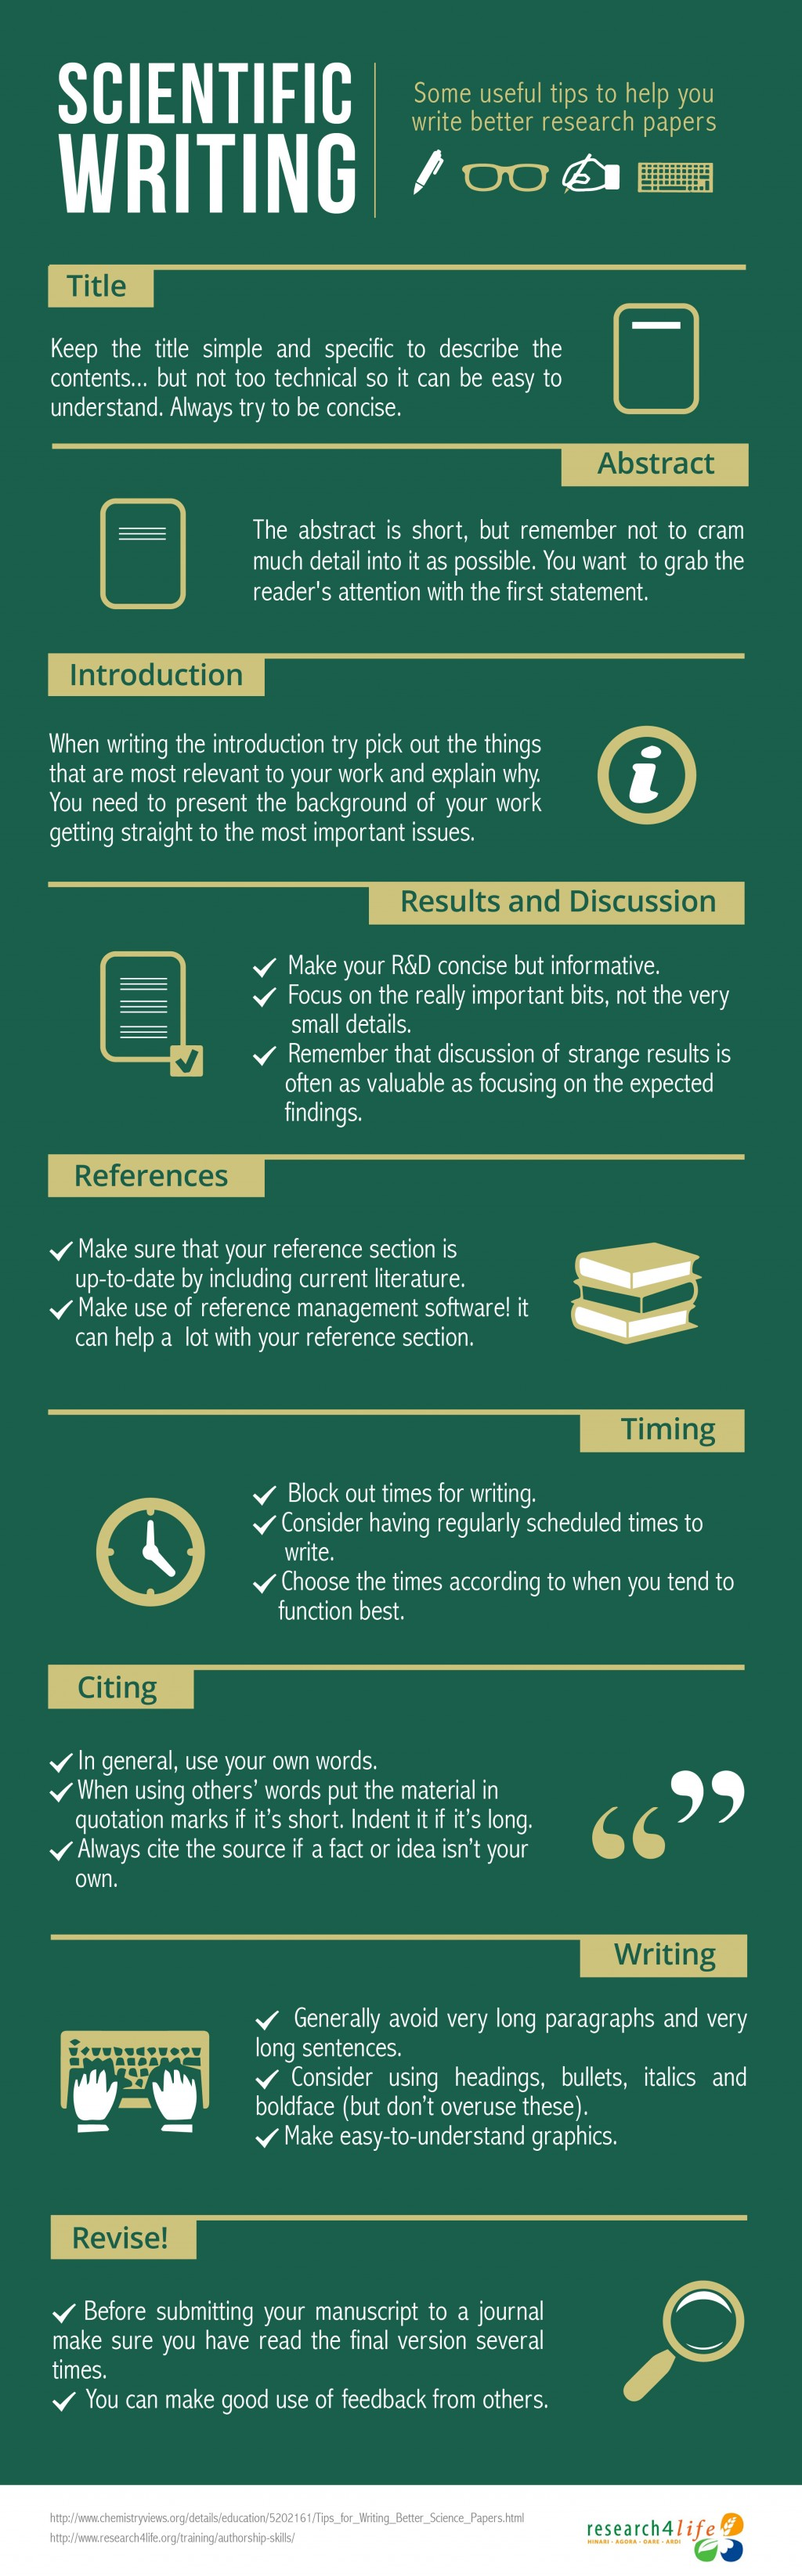 001 Research Paper Best Tips For Writing Scientific Remarkable A Way To Write Thesis Persuasive Large